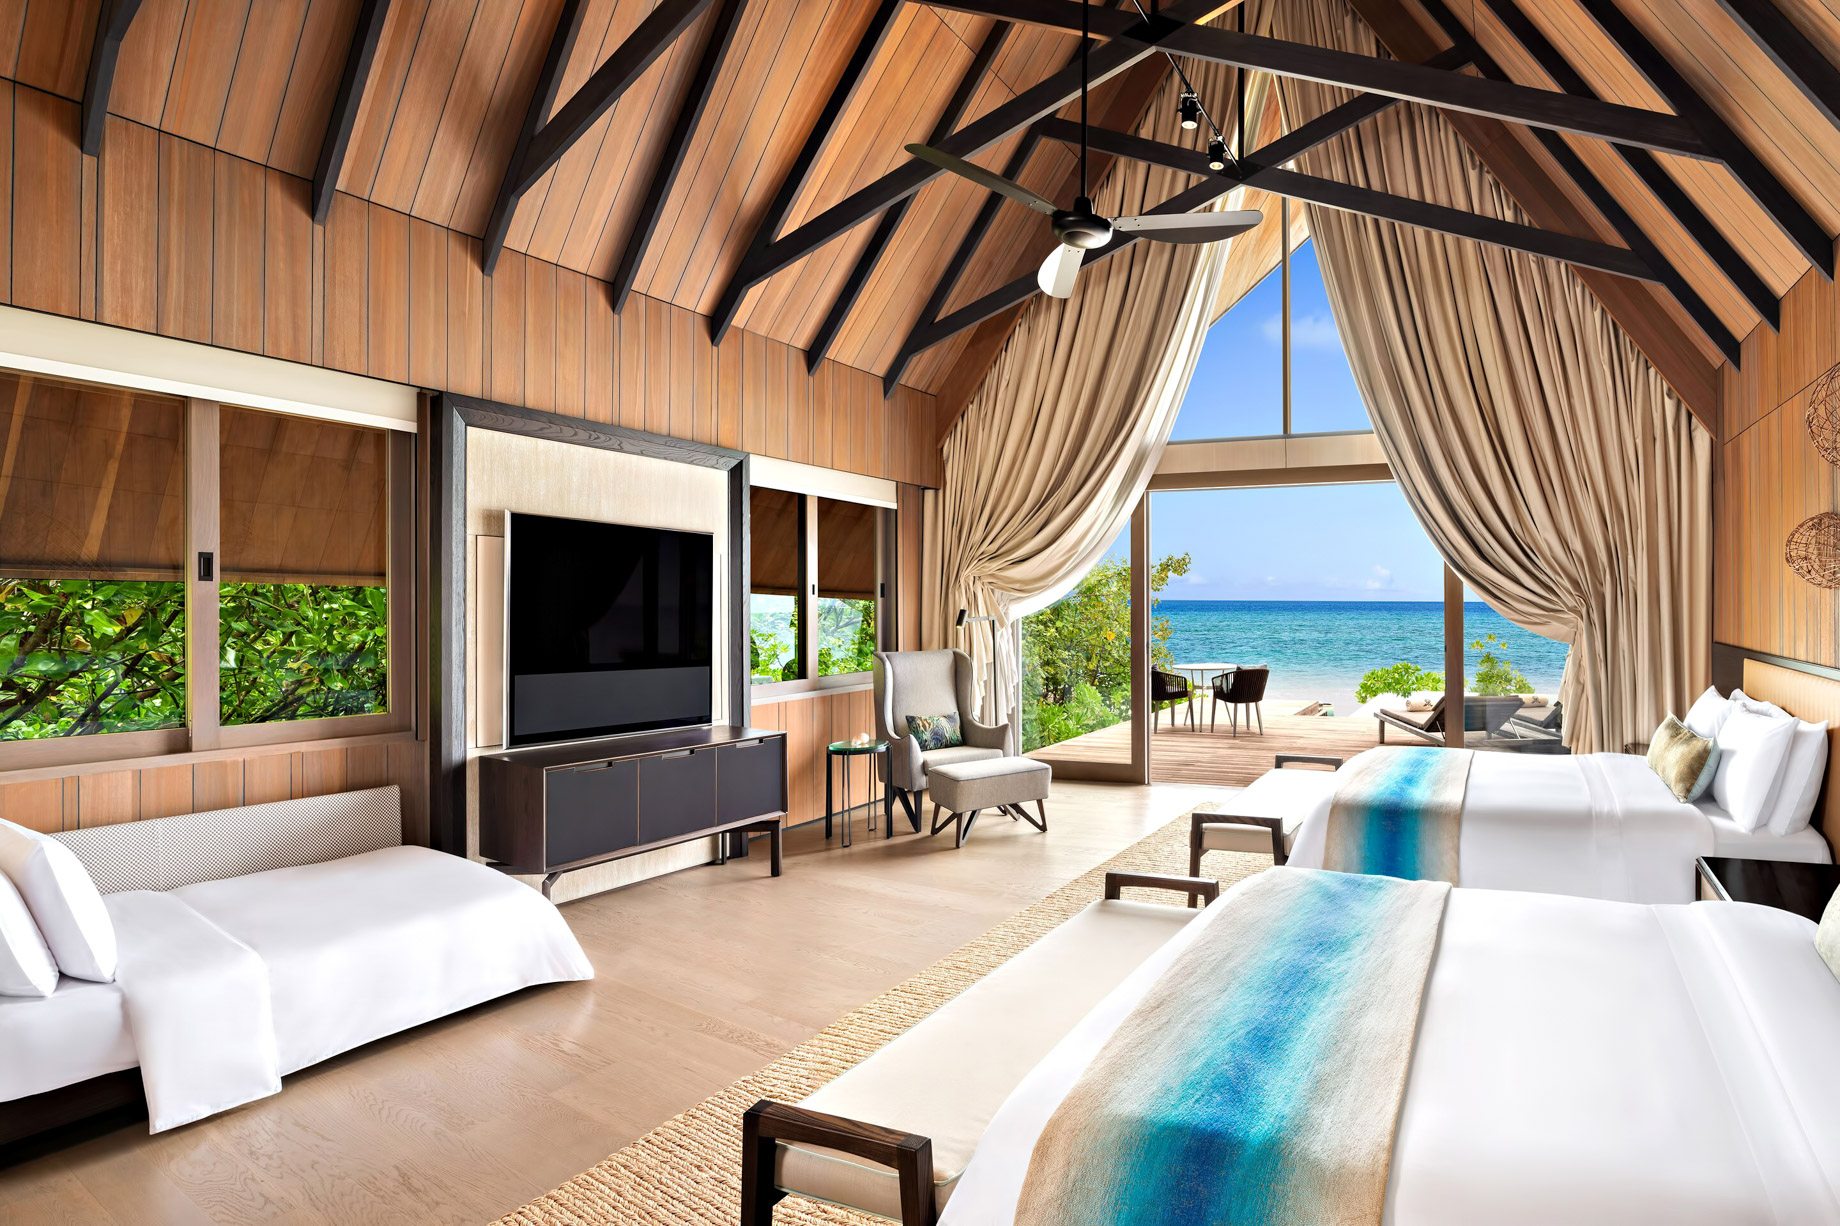 The St. Regis Maldives Vommuli Luxury Resort - Dhaalu Atoll, Maldives - Queen Two Bedroom Beach Suite